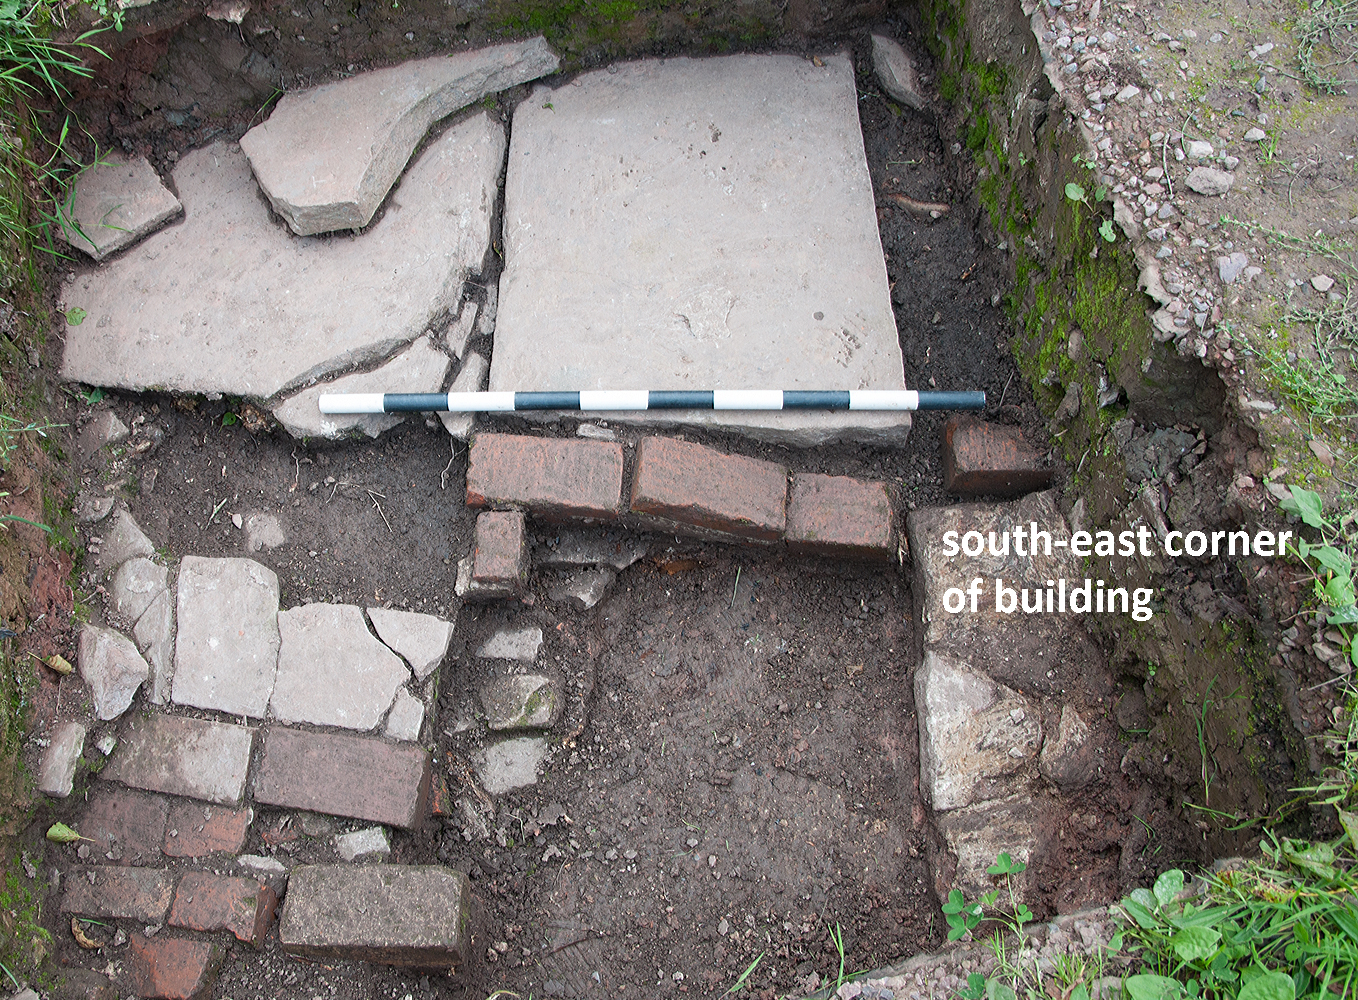 Flagstones and bricks laid to create a level surface outside the cottage wall.